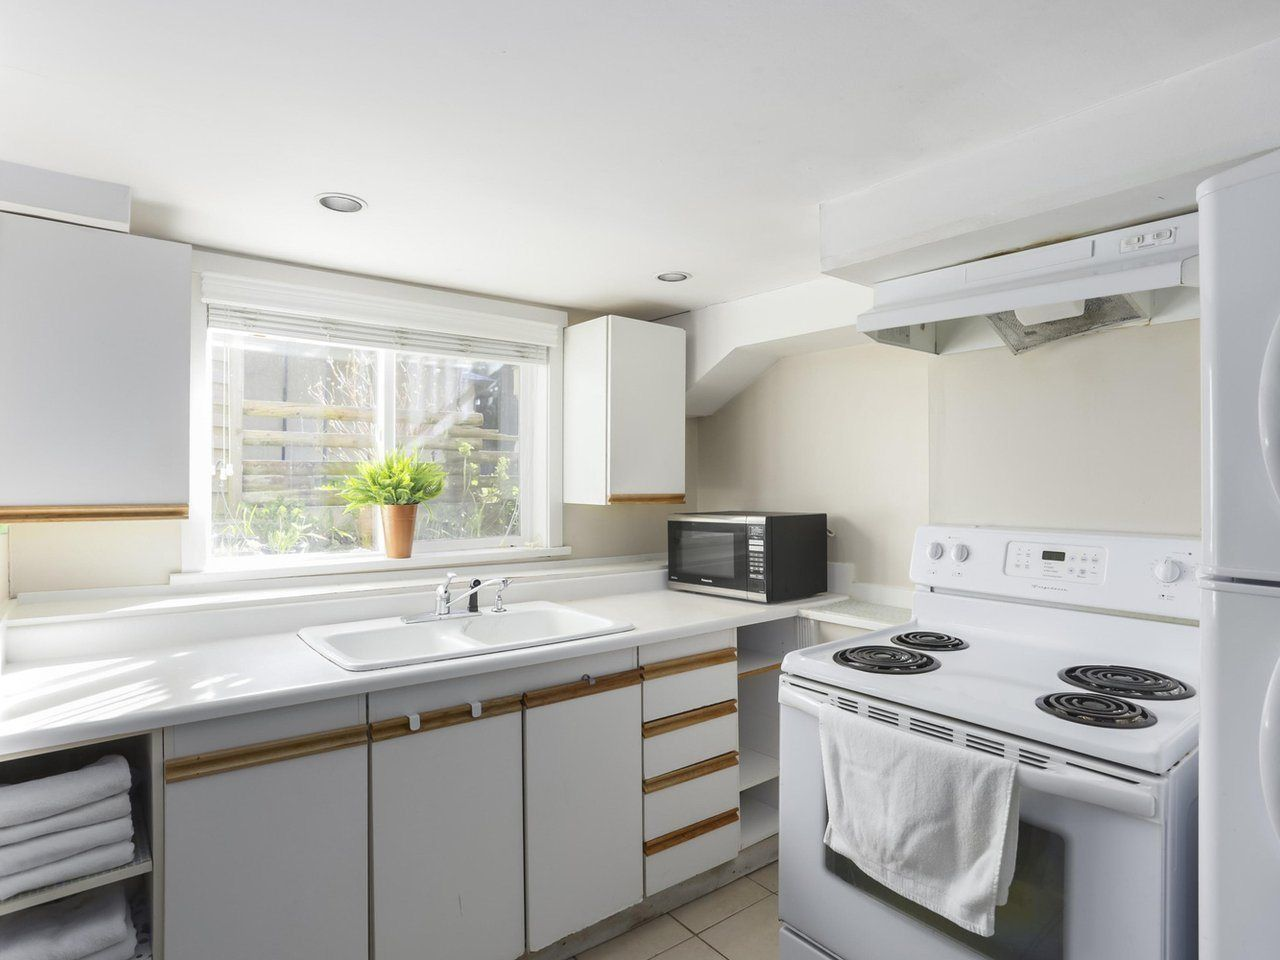 Photo 13: Photos: 325 W KINGS Road in North Vancouver: Upper Lonsdale House for sale : MLS®# R2443642